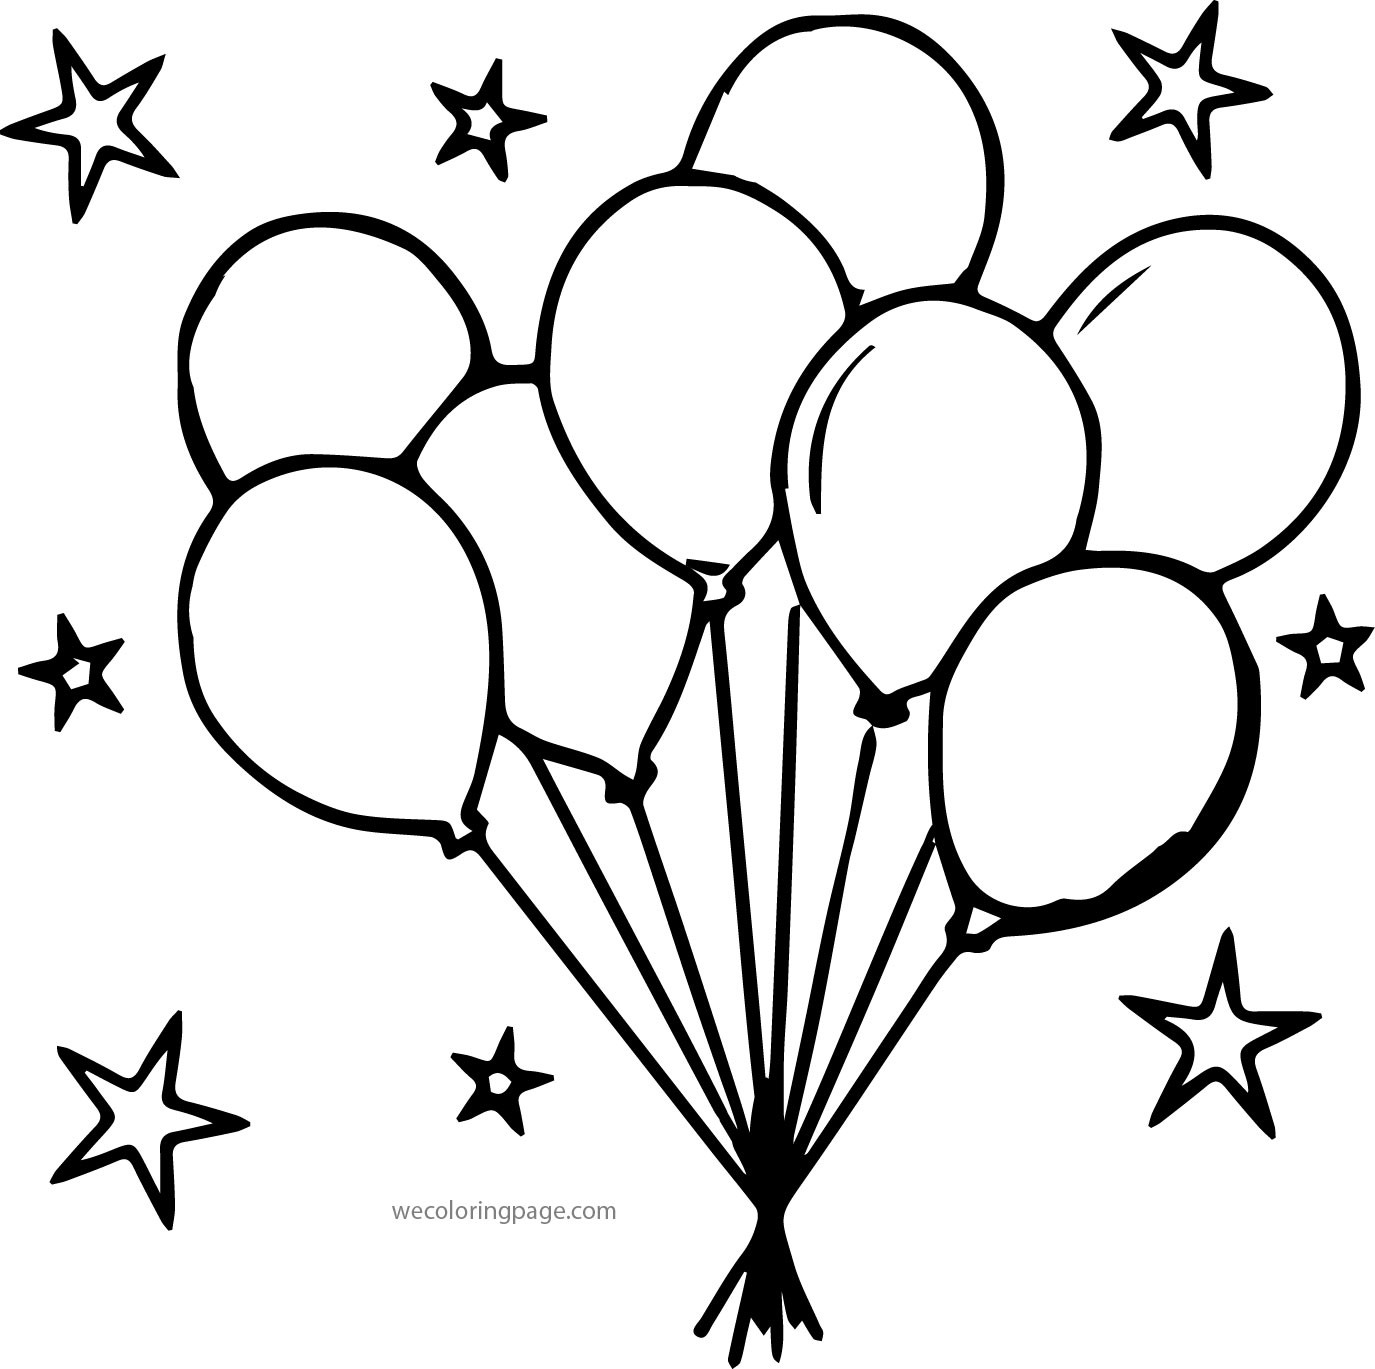 Free Coloring Sheets Of Balloons  Party Balloons Coloring Pages